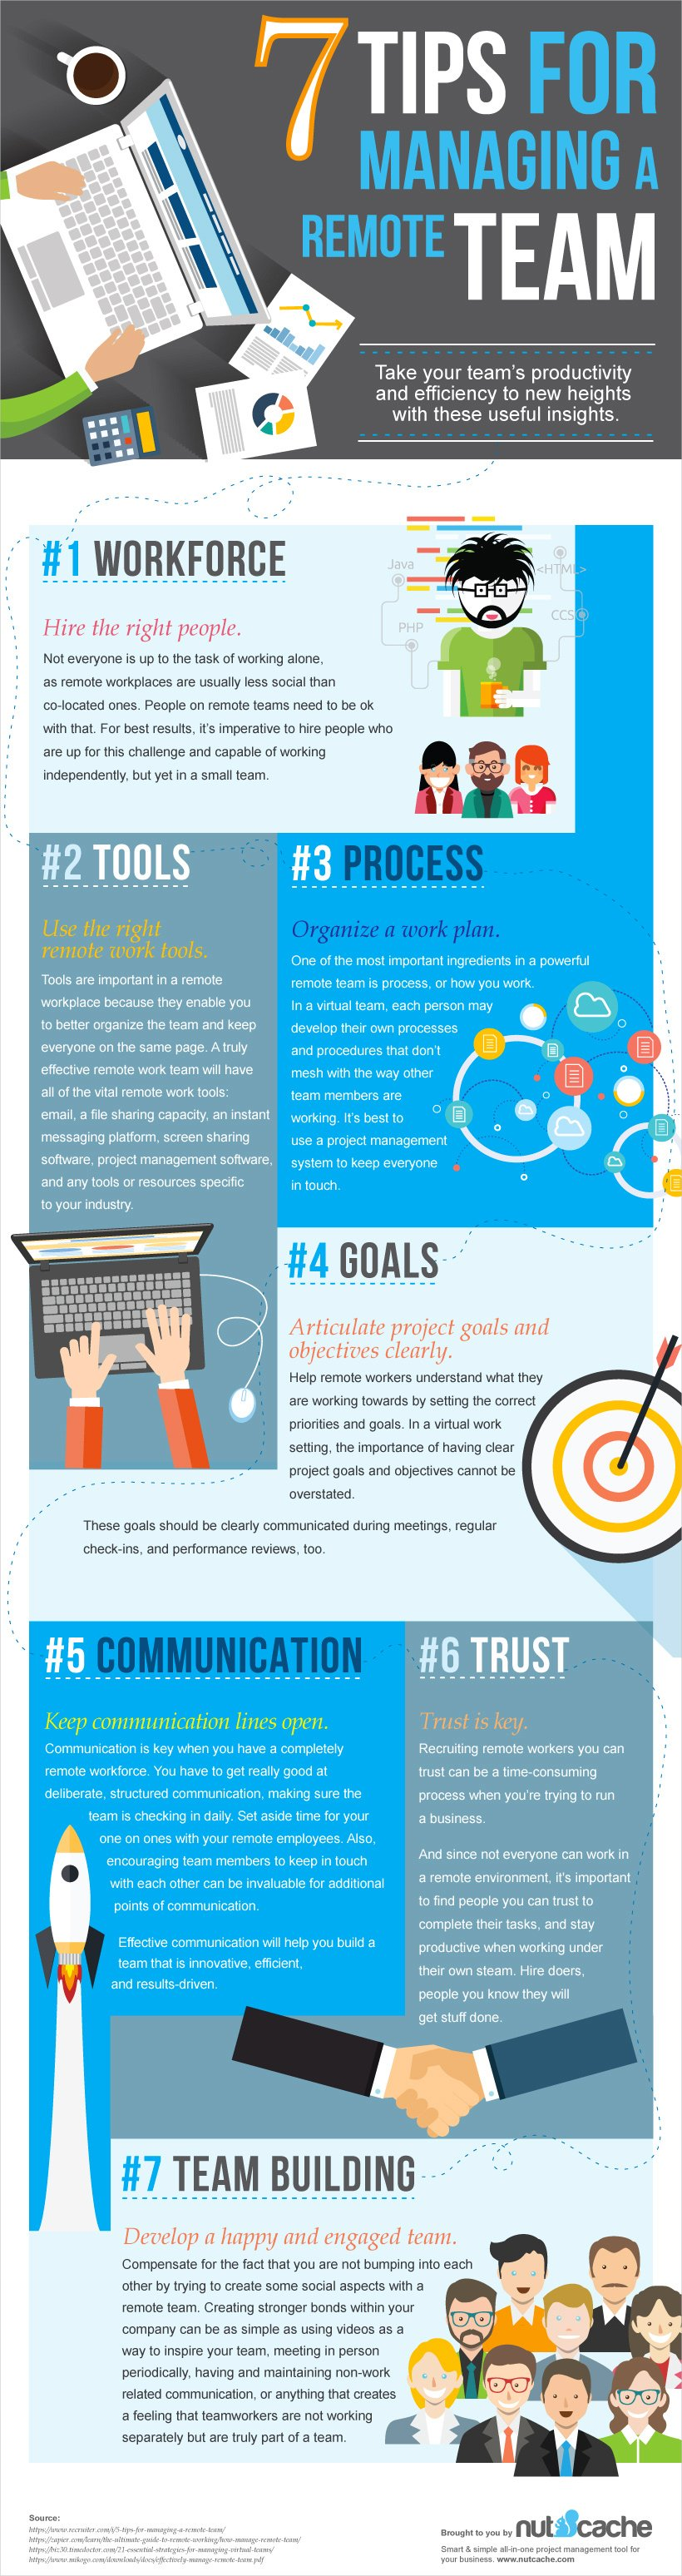 7-Tips-for-Managing-a-Remote-Team-Infographic